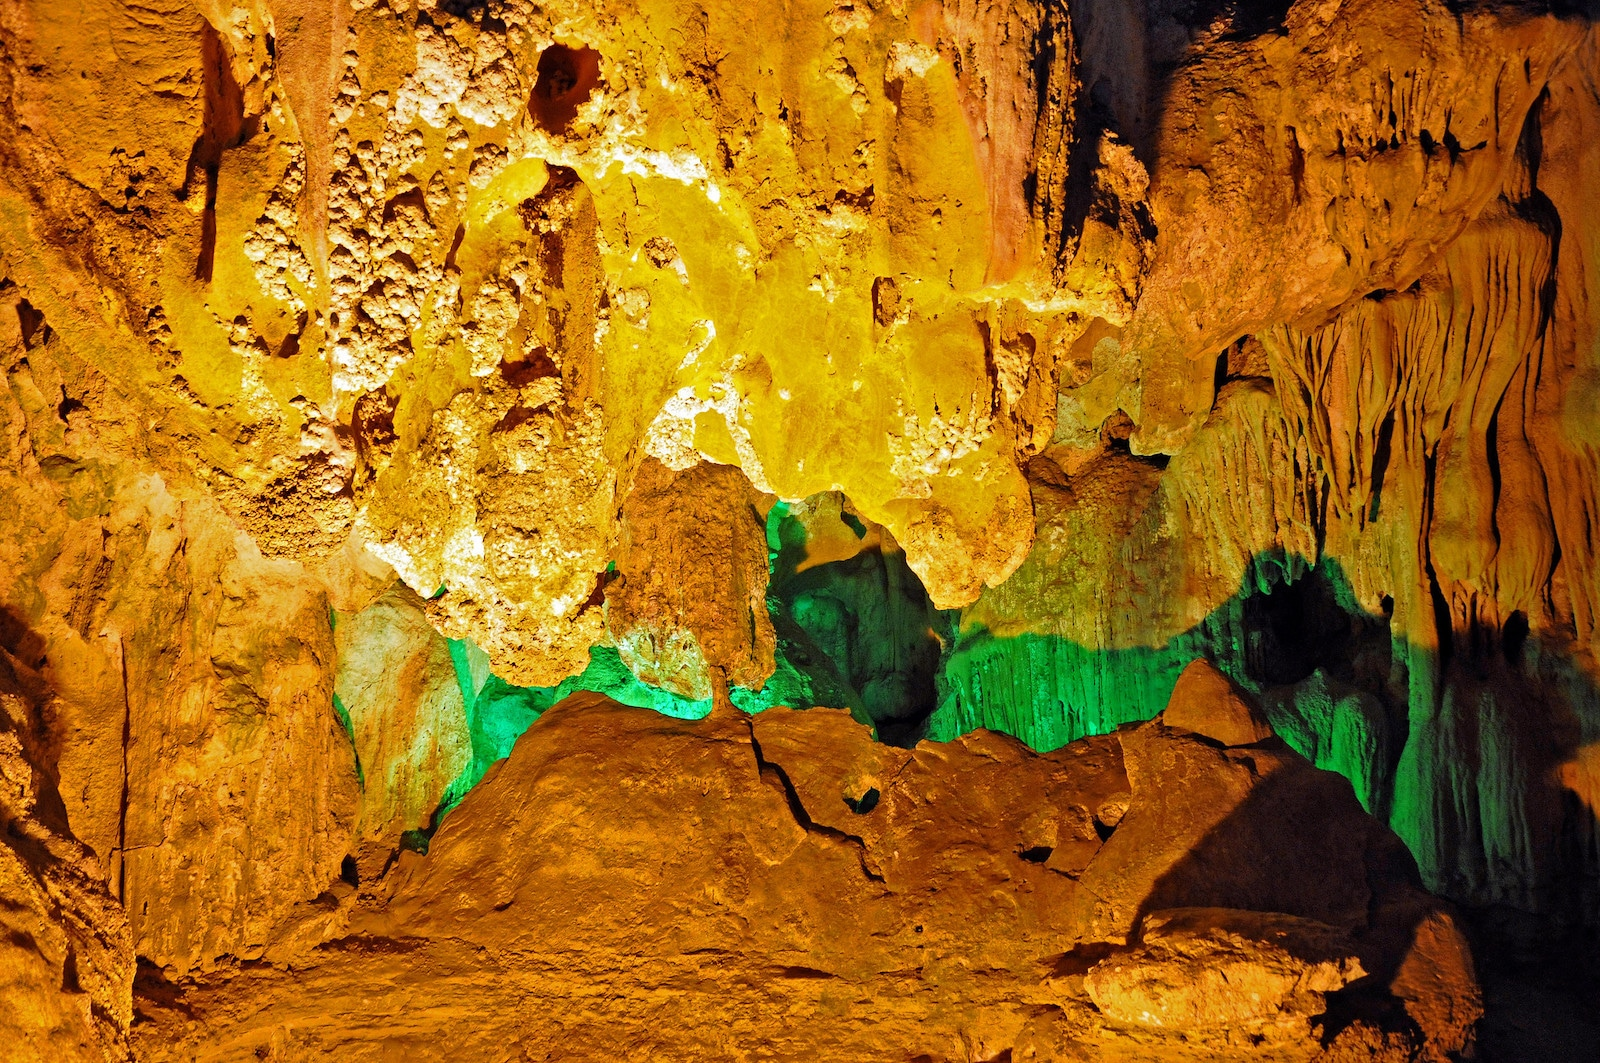 Thien Cung cave, Vn